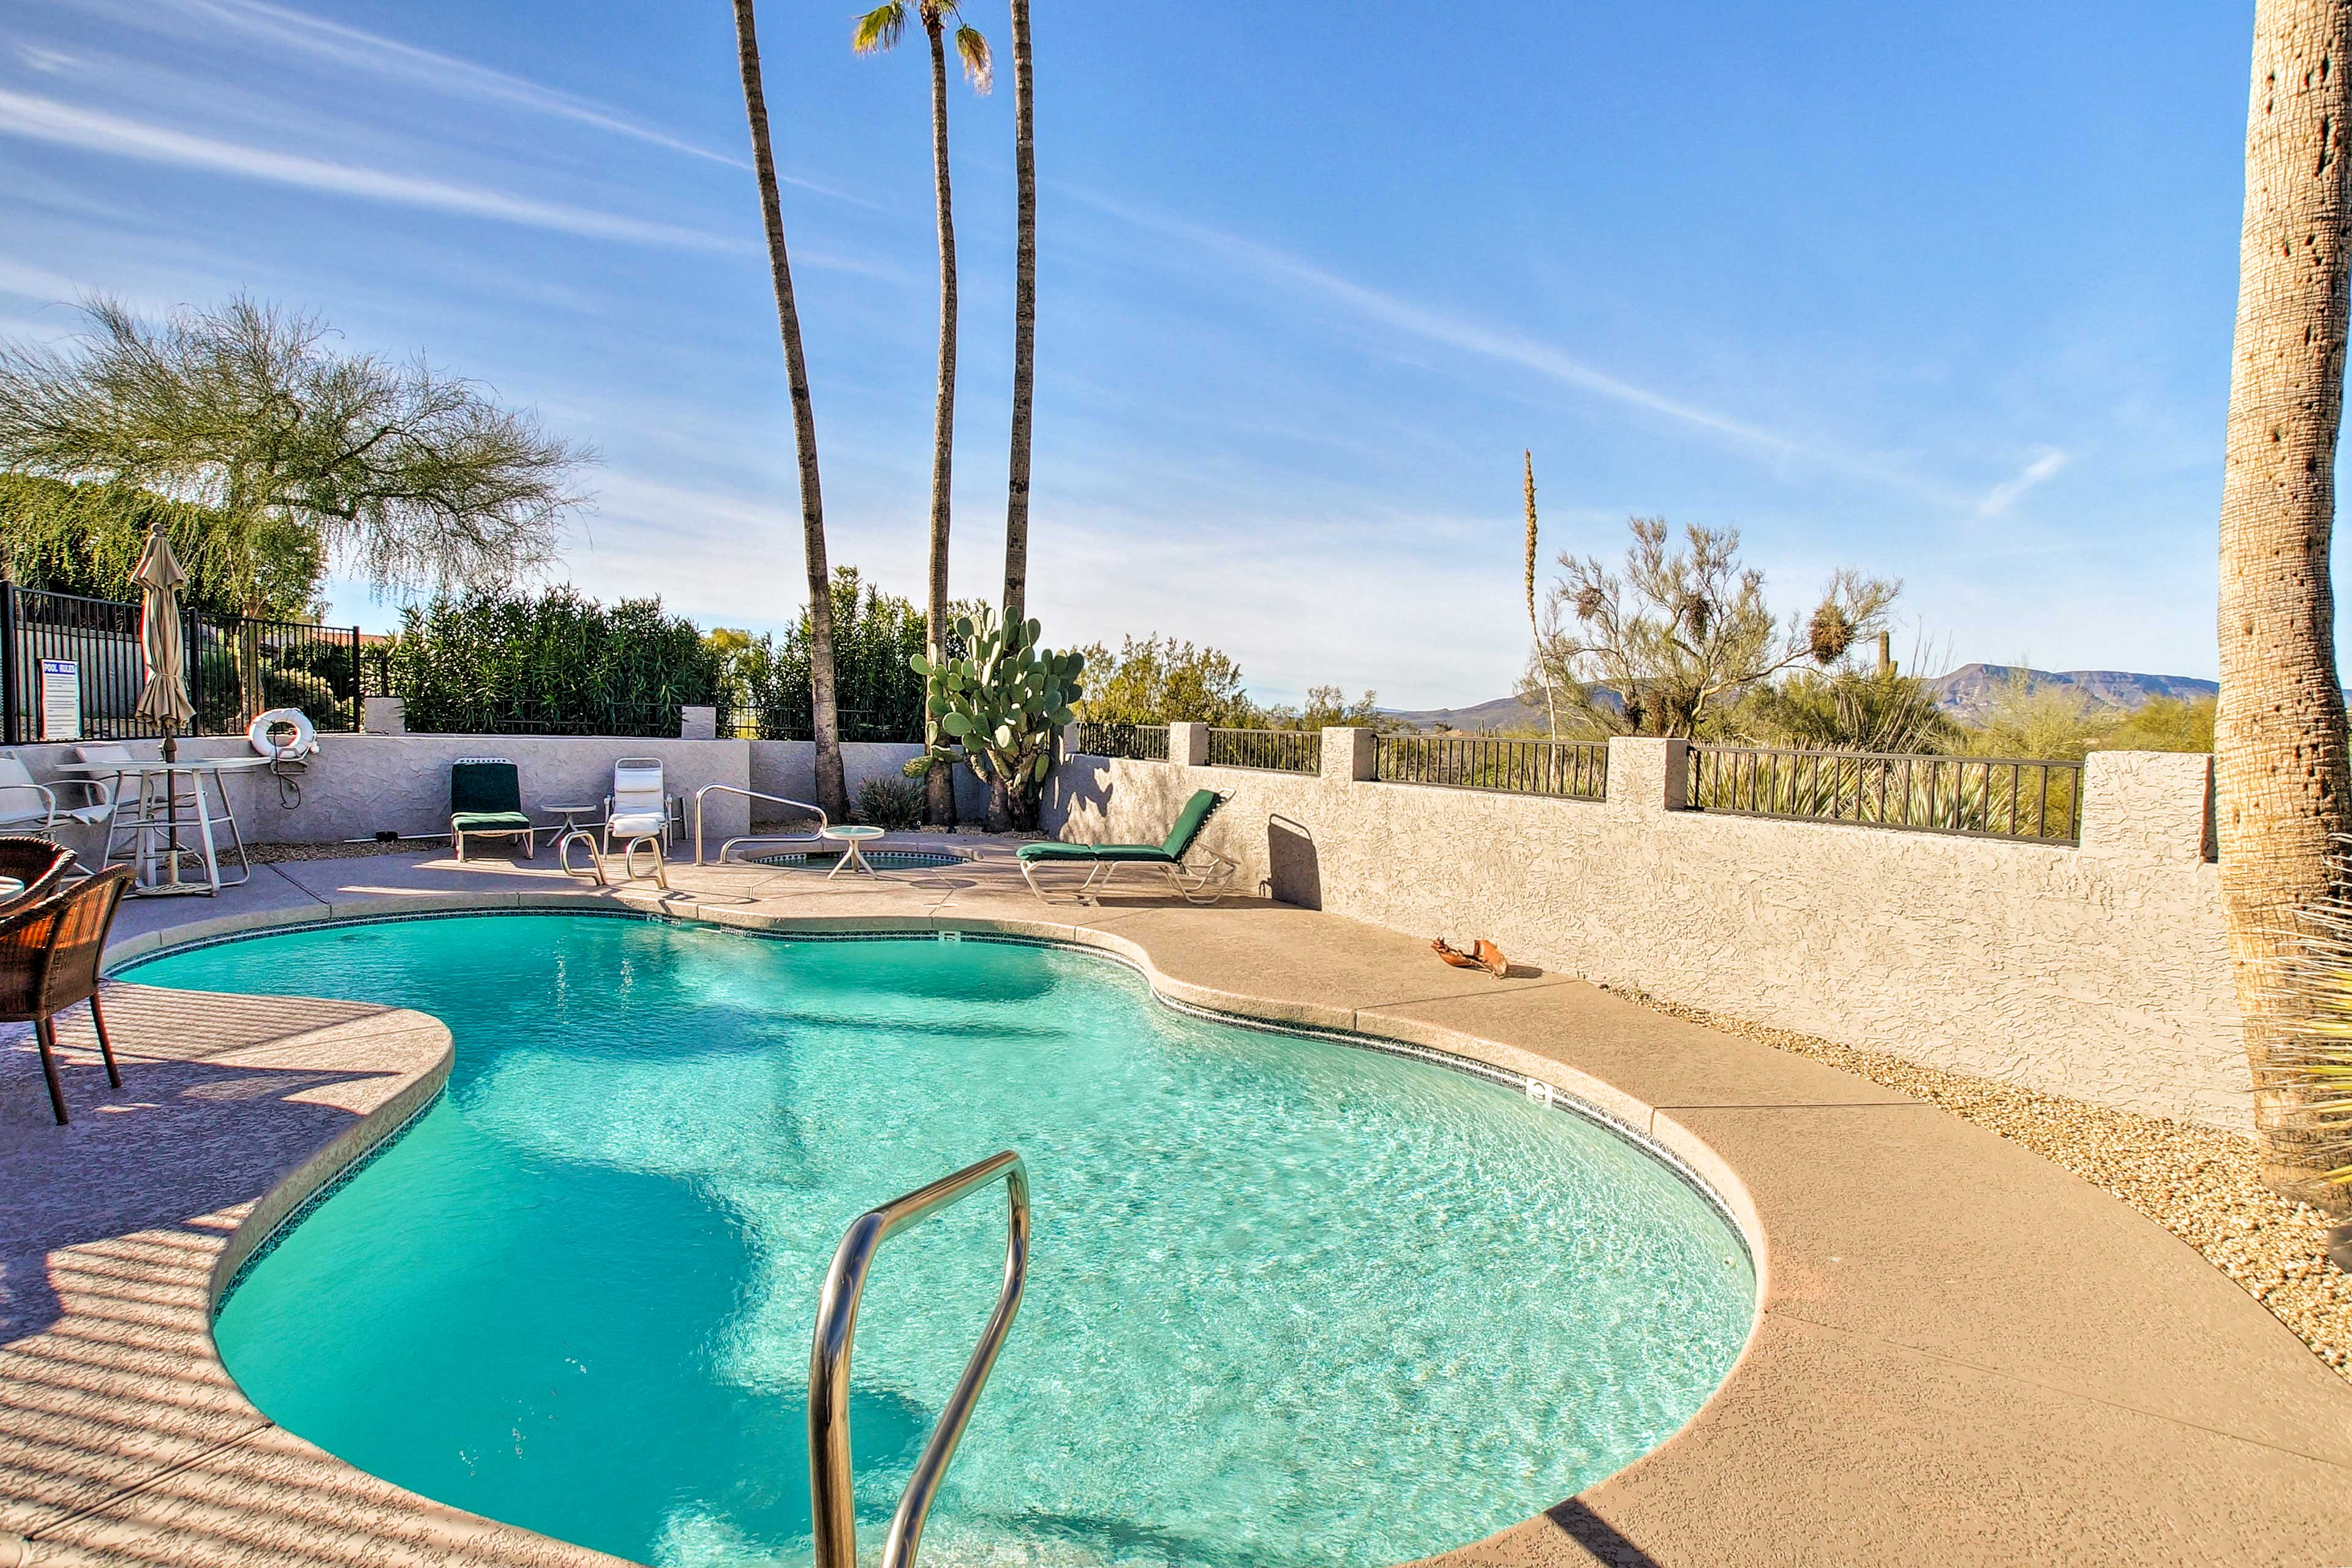 You'll have Bask in the pool or in a chaise lounge surrounded by mountain views.